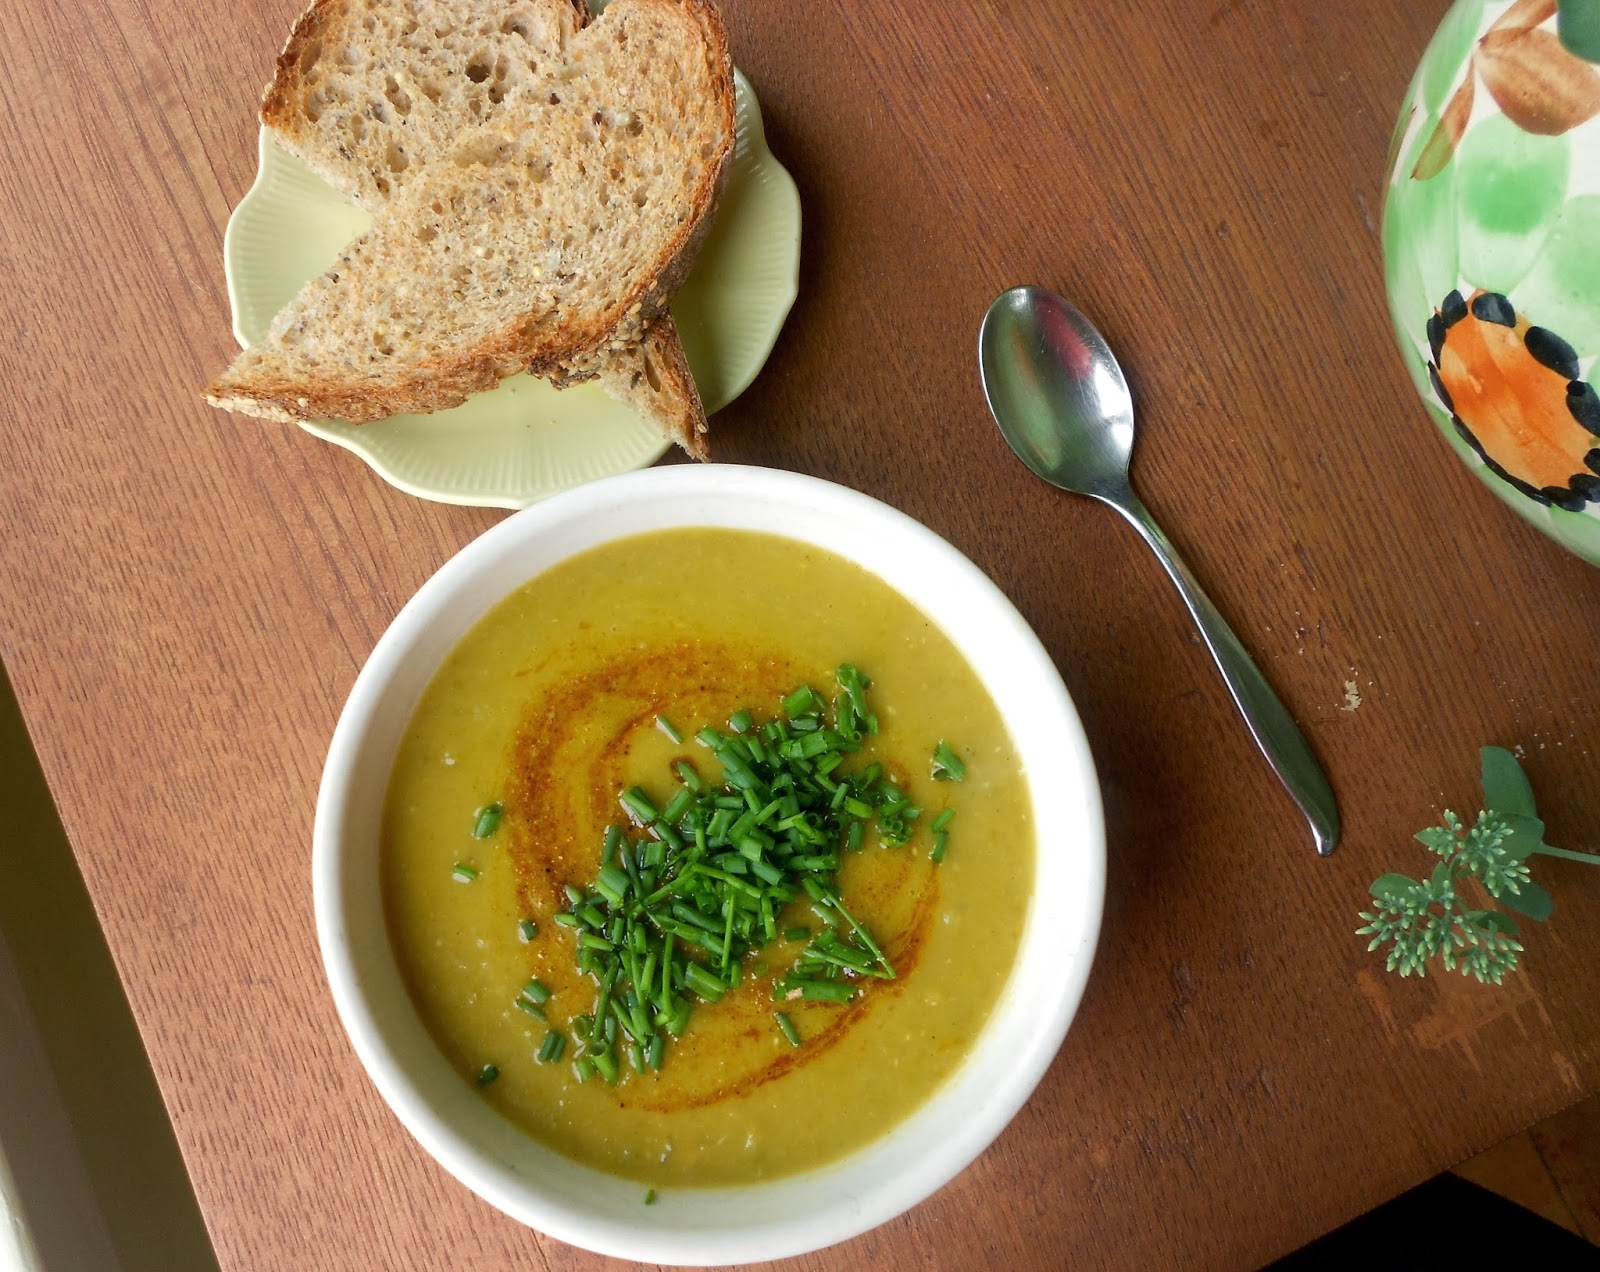 ... in everything, cozy evenings indoors, and TONS of thick, hearty soup